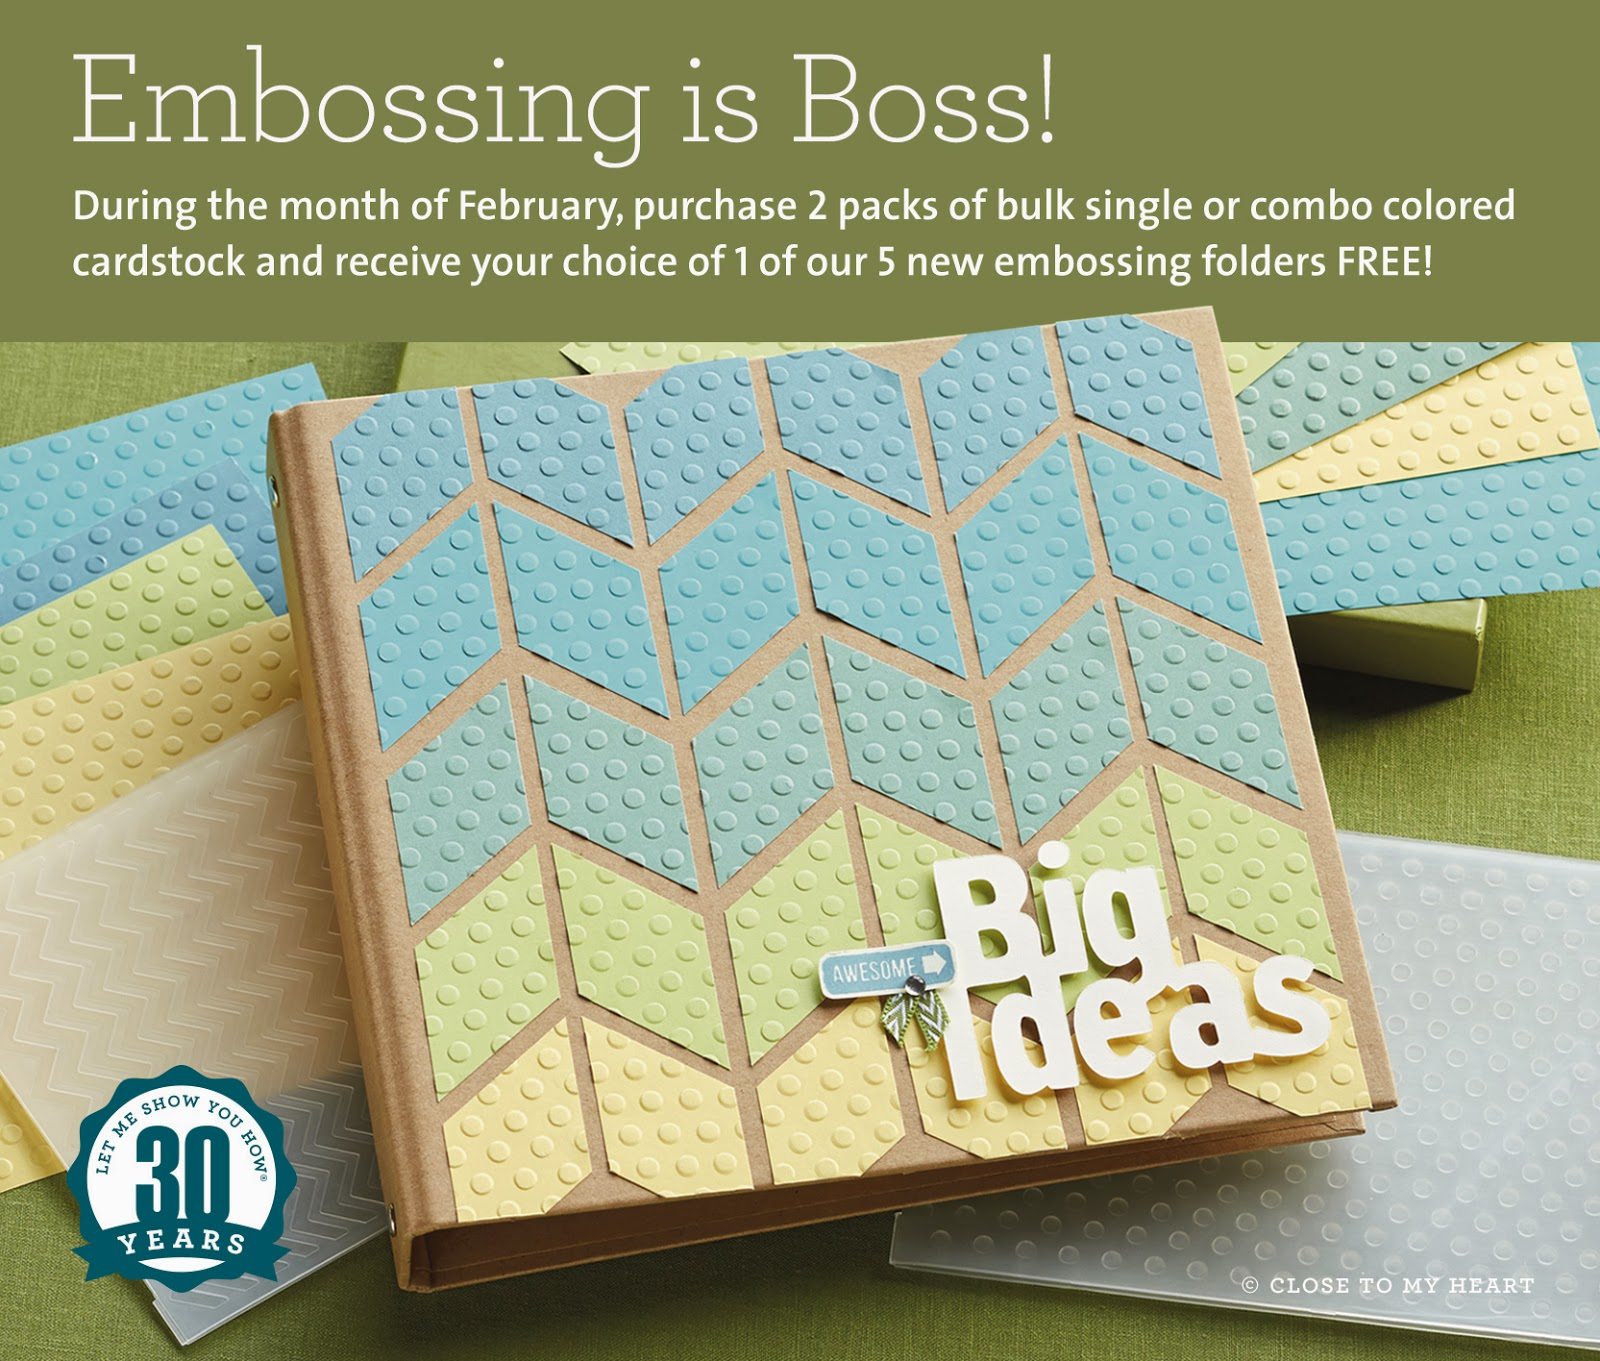 http://macsisak.ctmh.com/ctmh/promotions/campaigns/1402-embossing-is-boss.aspx